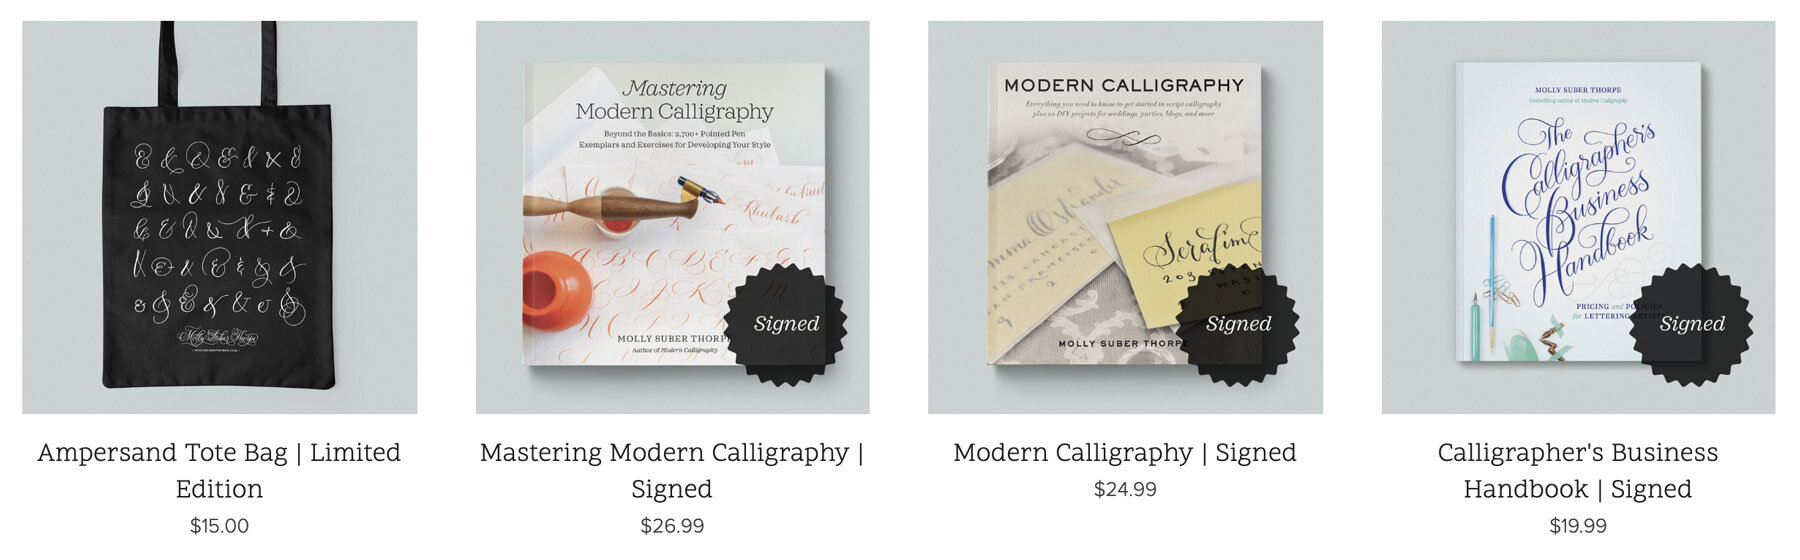 Pop-up-shop-Molly-Suber-Thorpe-Calligraphy-Books.jpg